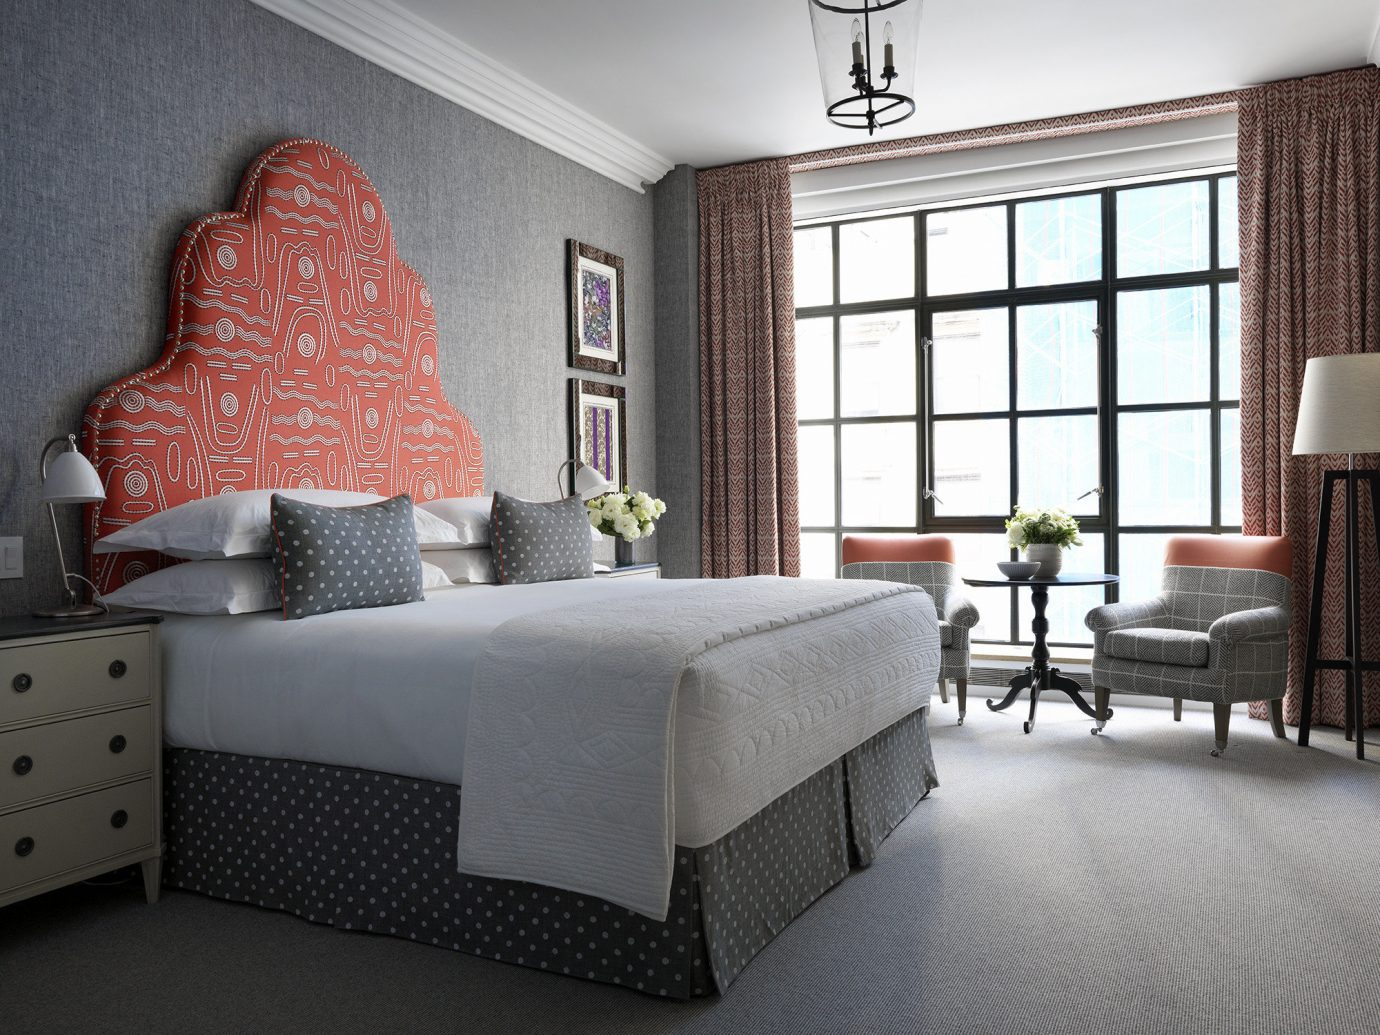 Bedroom at the Whitby Hotel in NYC